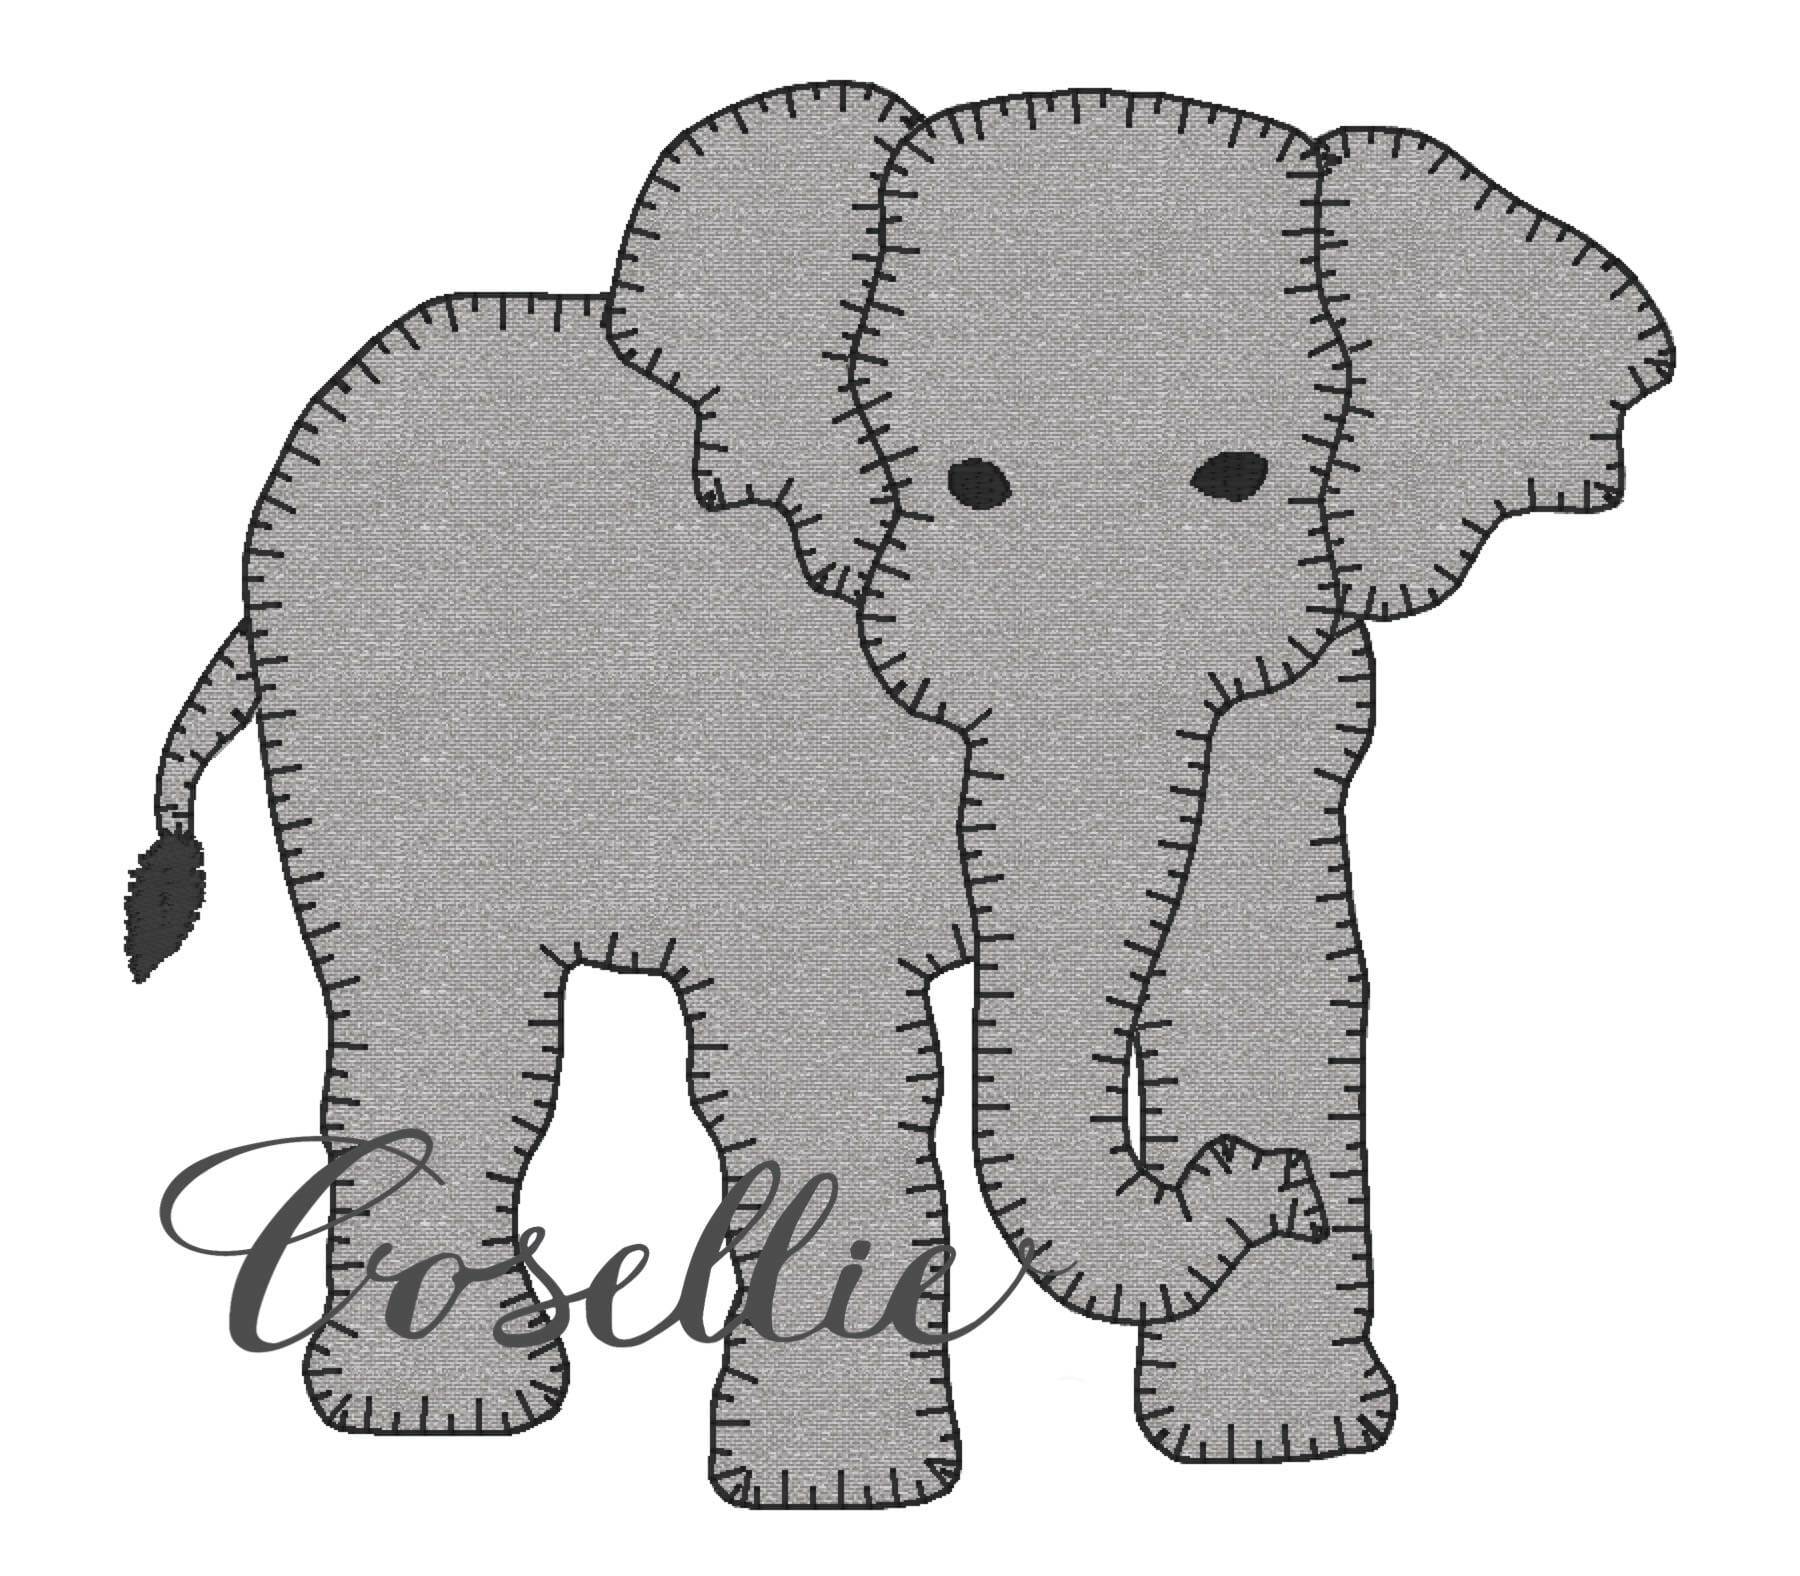 Elephant Embroidery Designs Gallery - handicraft ideas home decorating